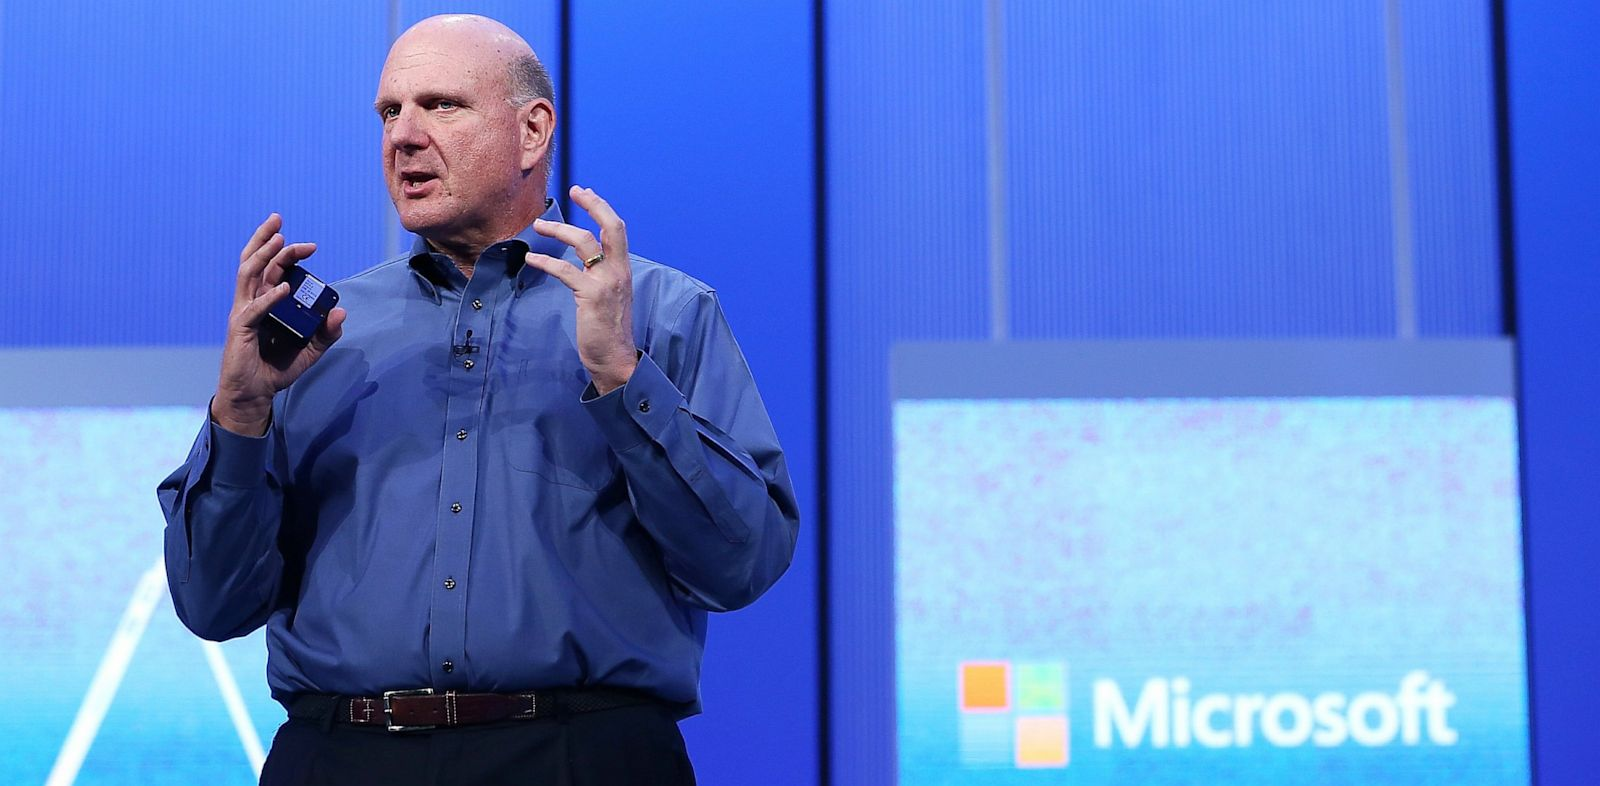 PHOTO: Microsoft CEO Steve Ballmer speaks during the keynote address during the Microsoft Build Conference on June 26, 2013 in San Francisco, California.